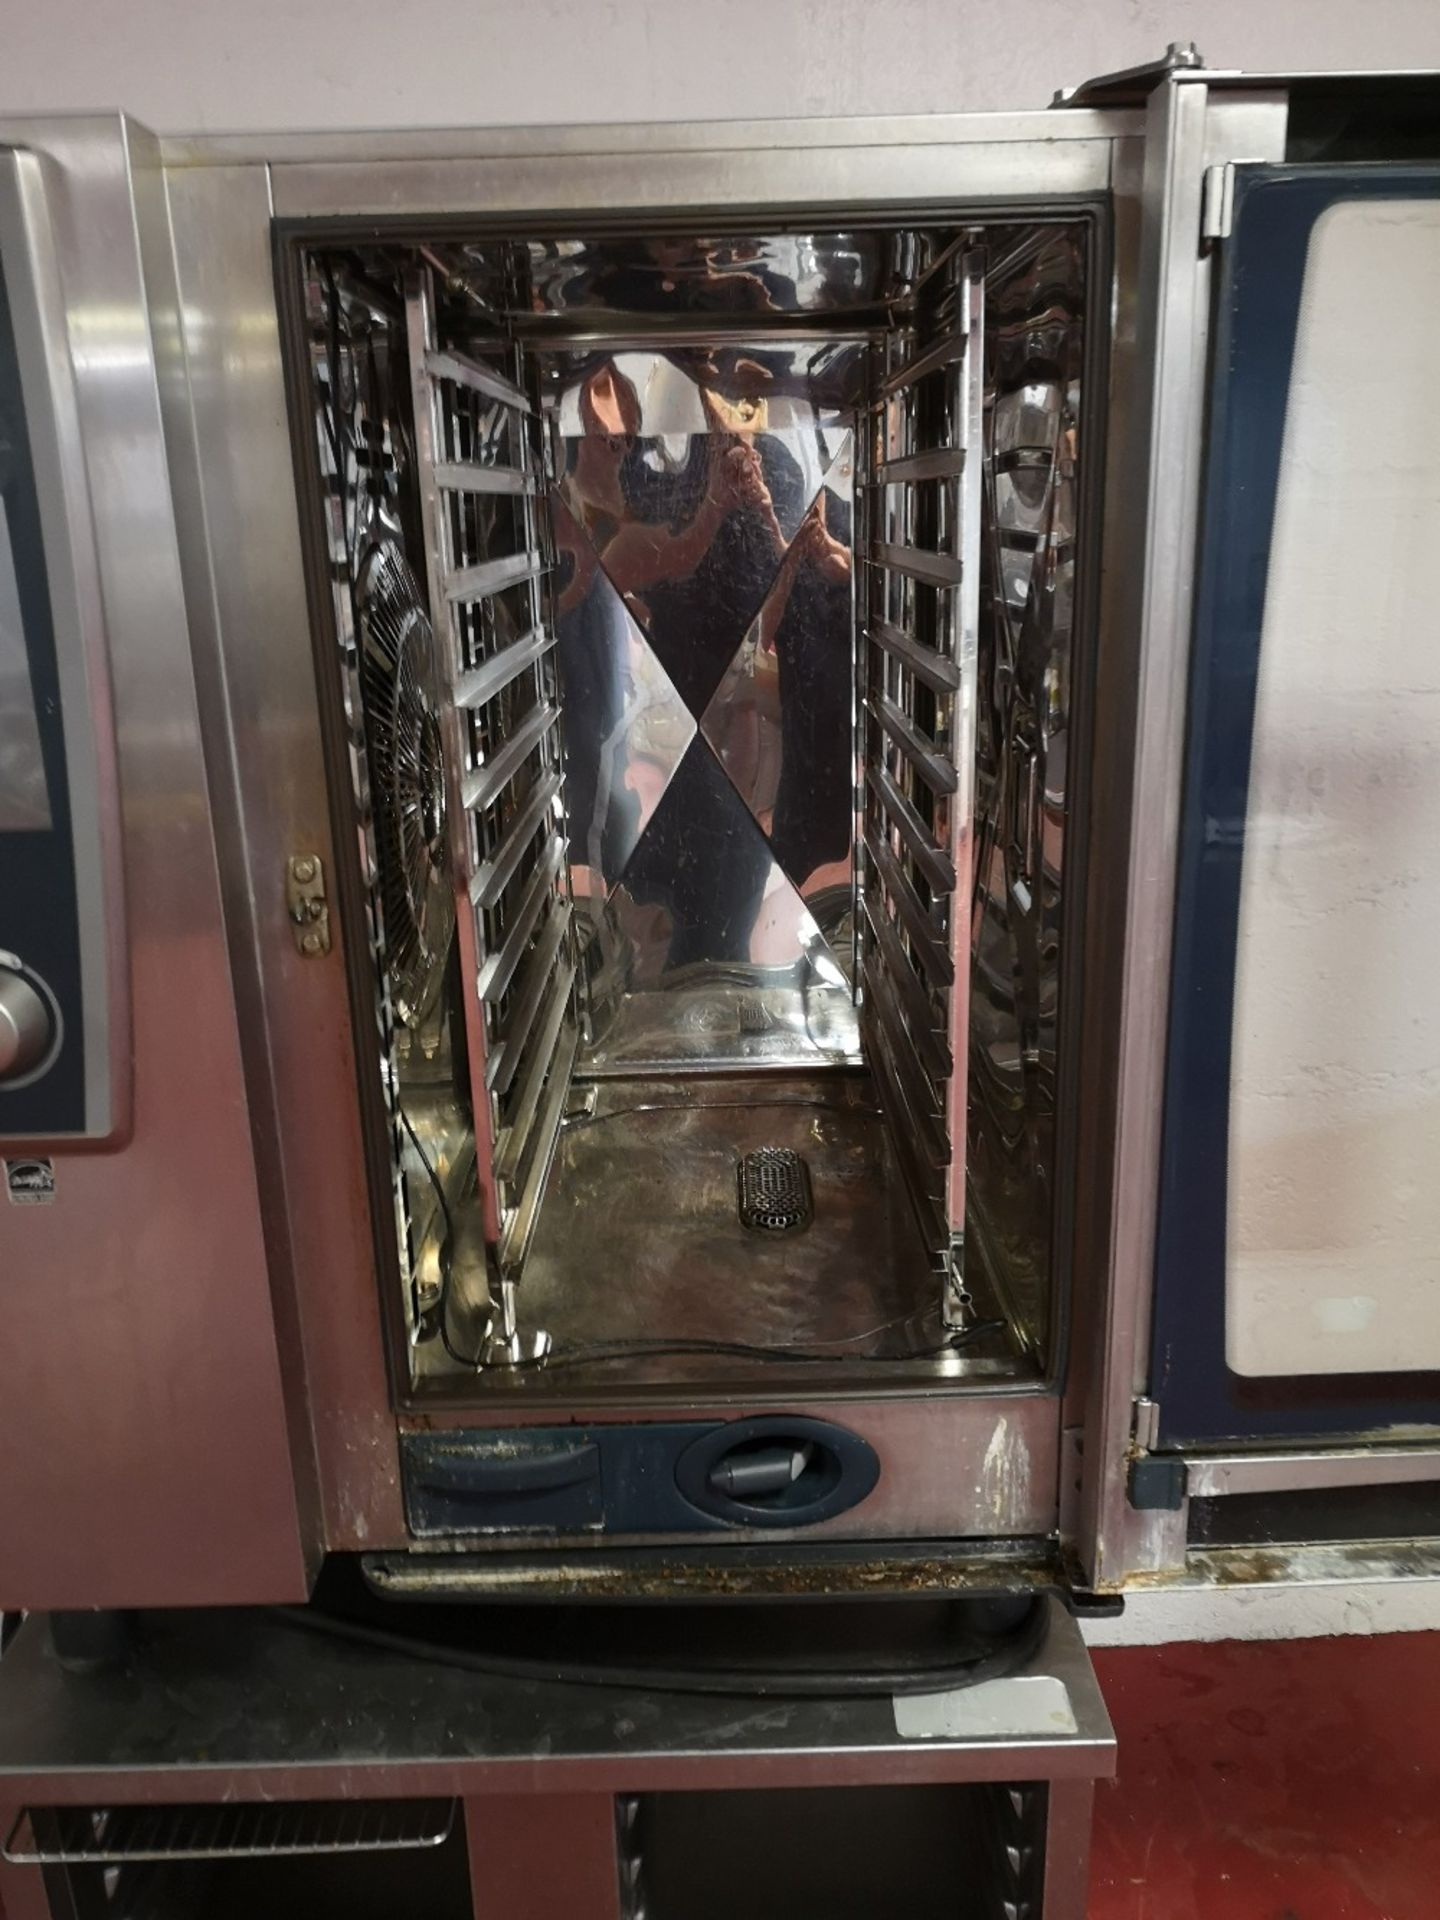 Rational SCCWE101 5 Senses 10 grid Electric Combination Oven on Mobile Stainless Steel Stand - Image 4 of 5